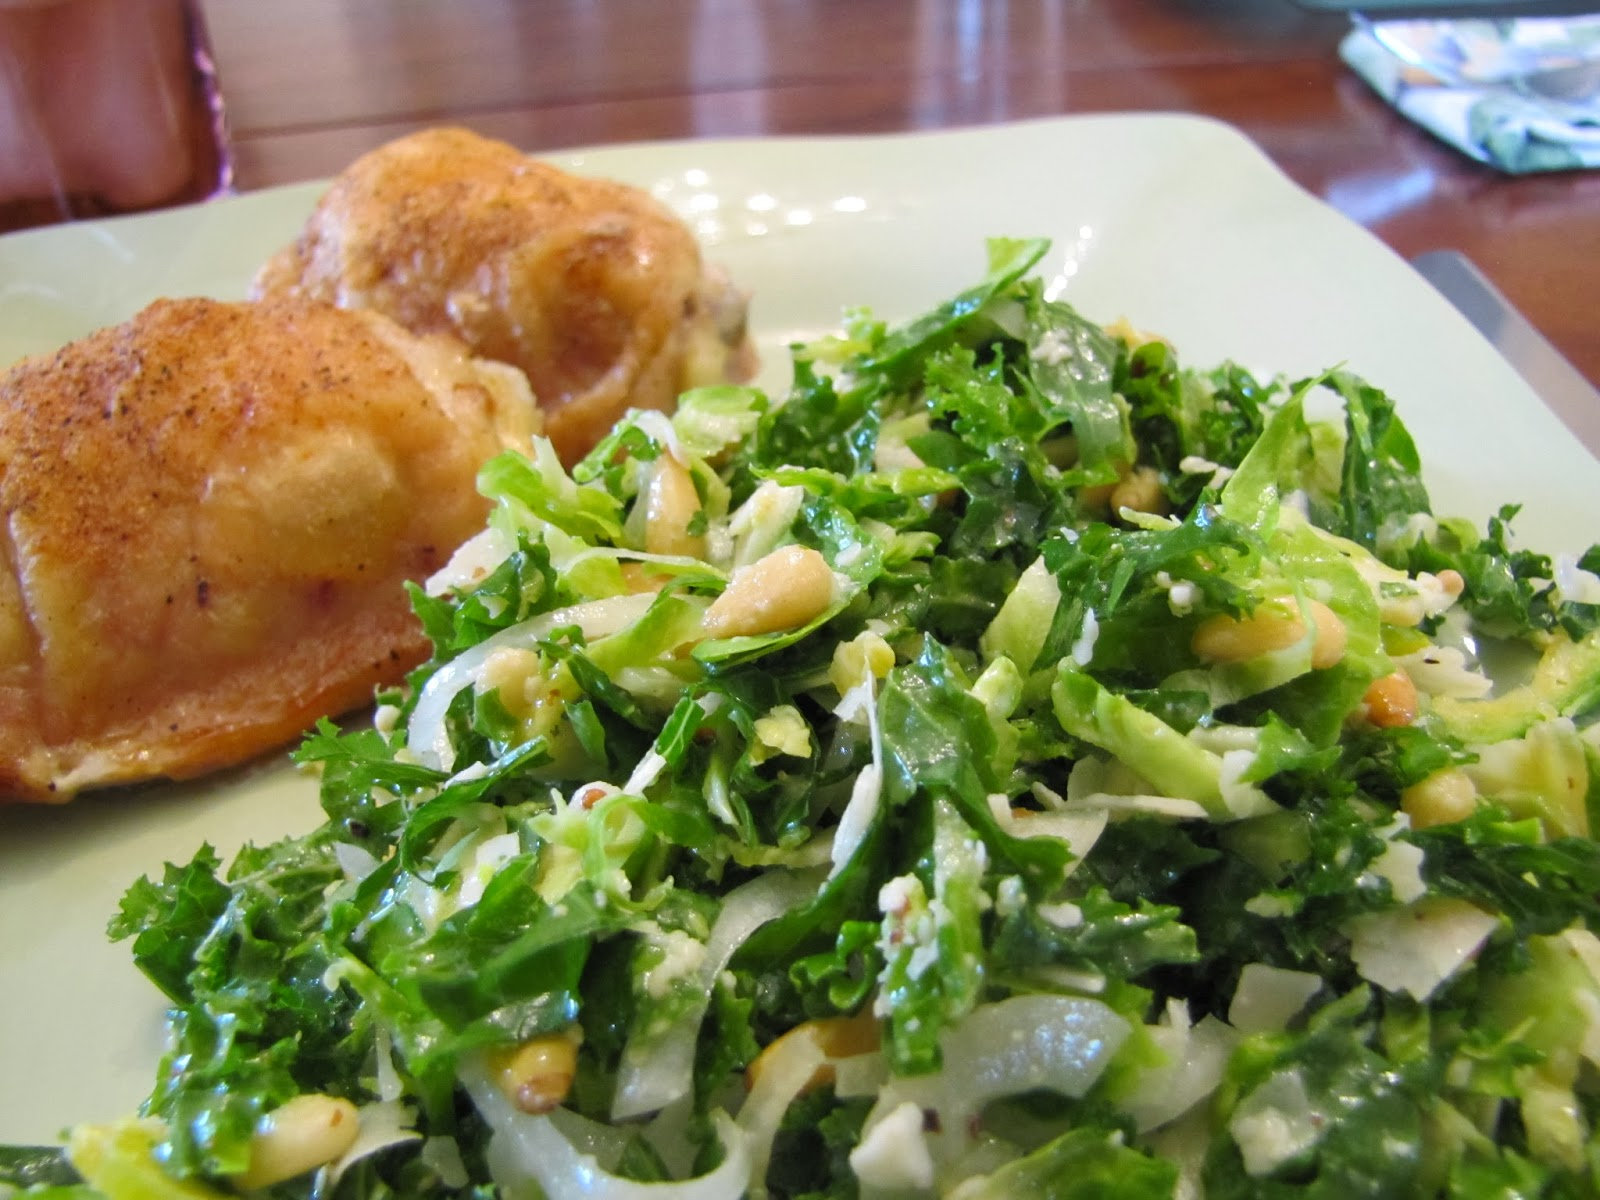 Farmhouse Rules Salad Recipes Kale And Brussels Sprout Salad Faithfulness Farm